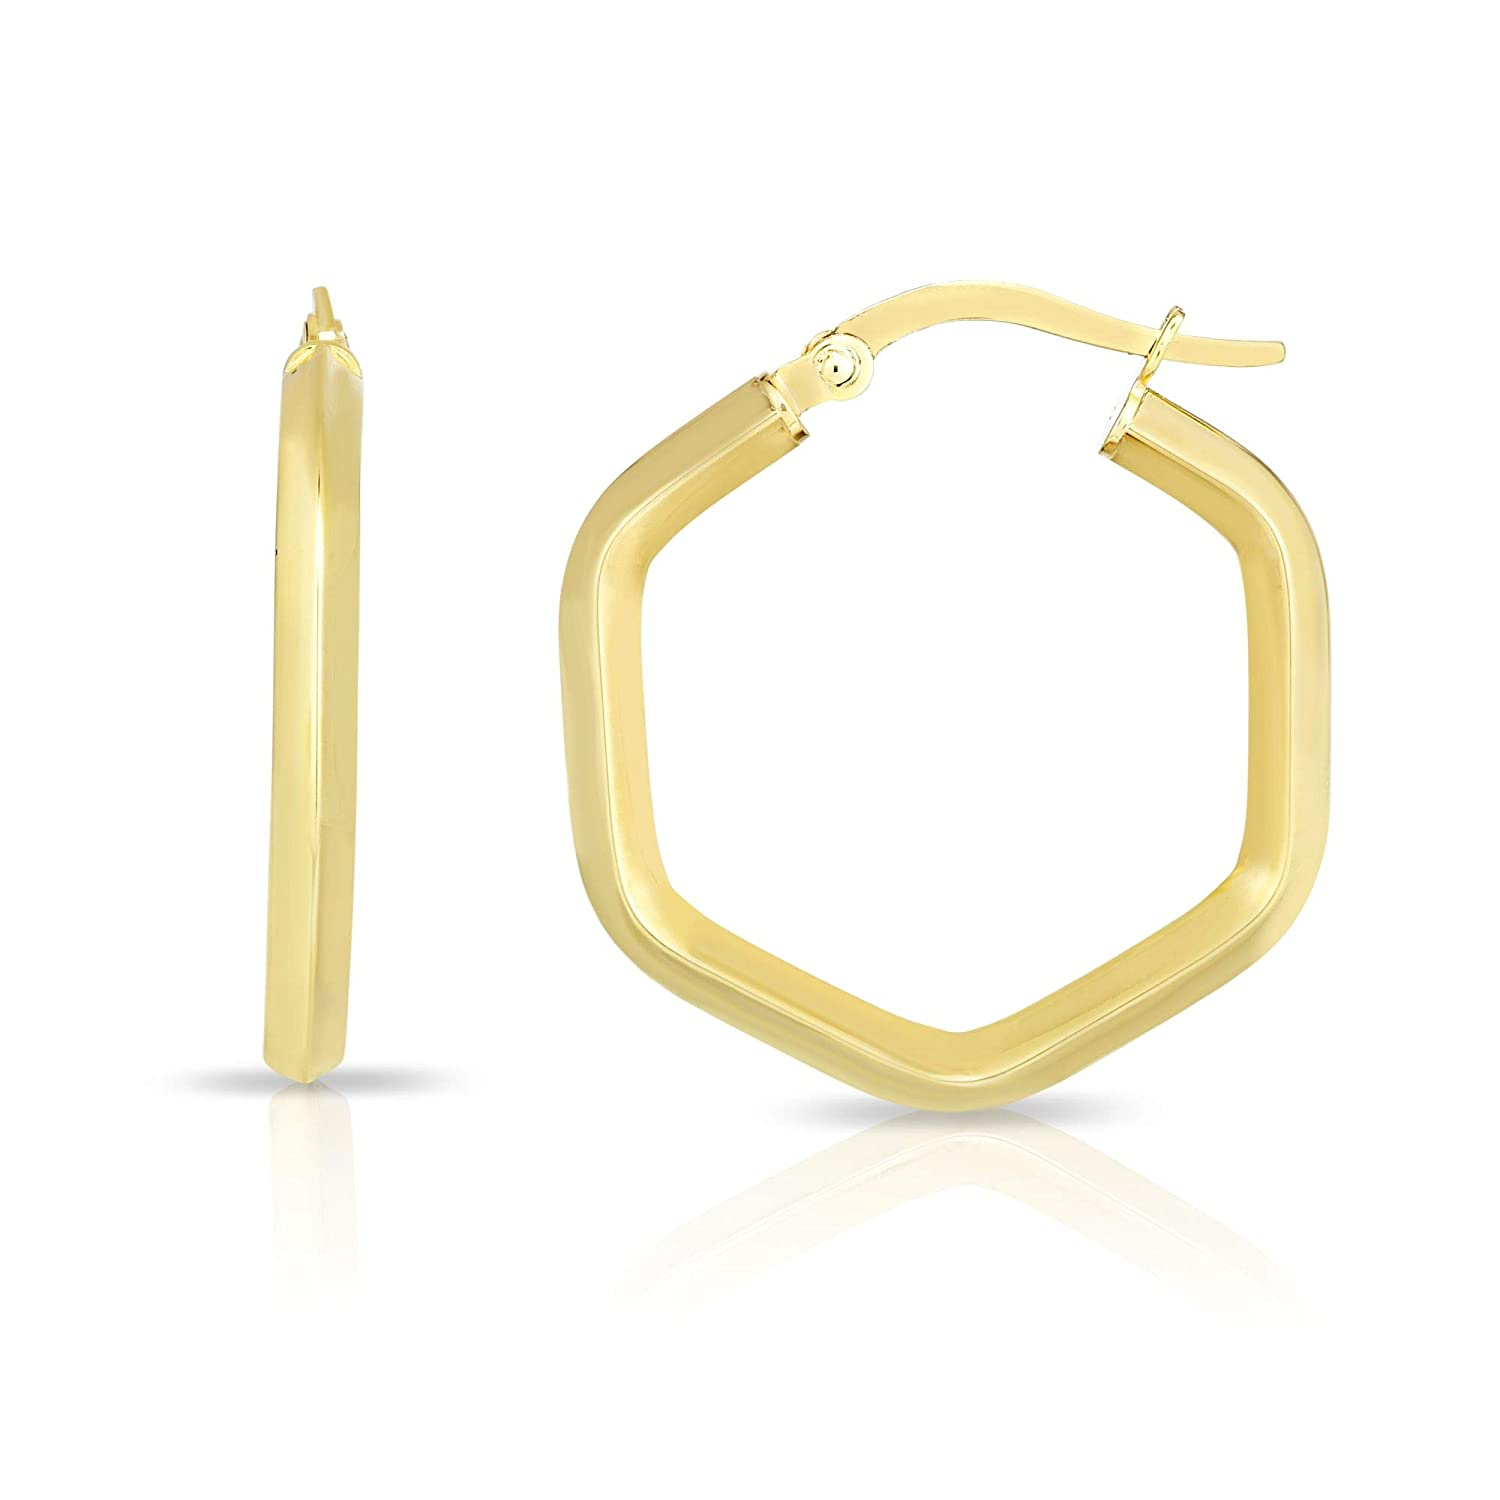 14K Yellow Rose or White Gold Finish Shiny Hexagon Hoop Fancy Earrings with Hinged by IcedTime